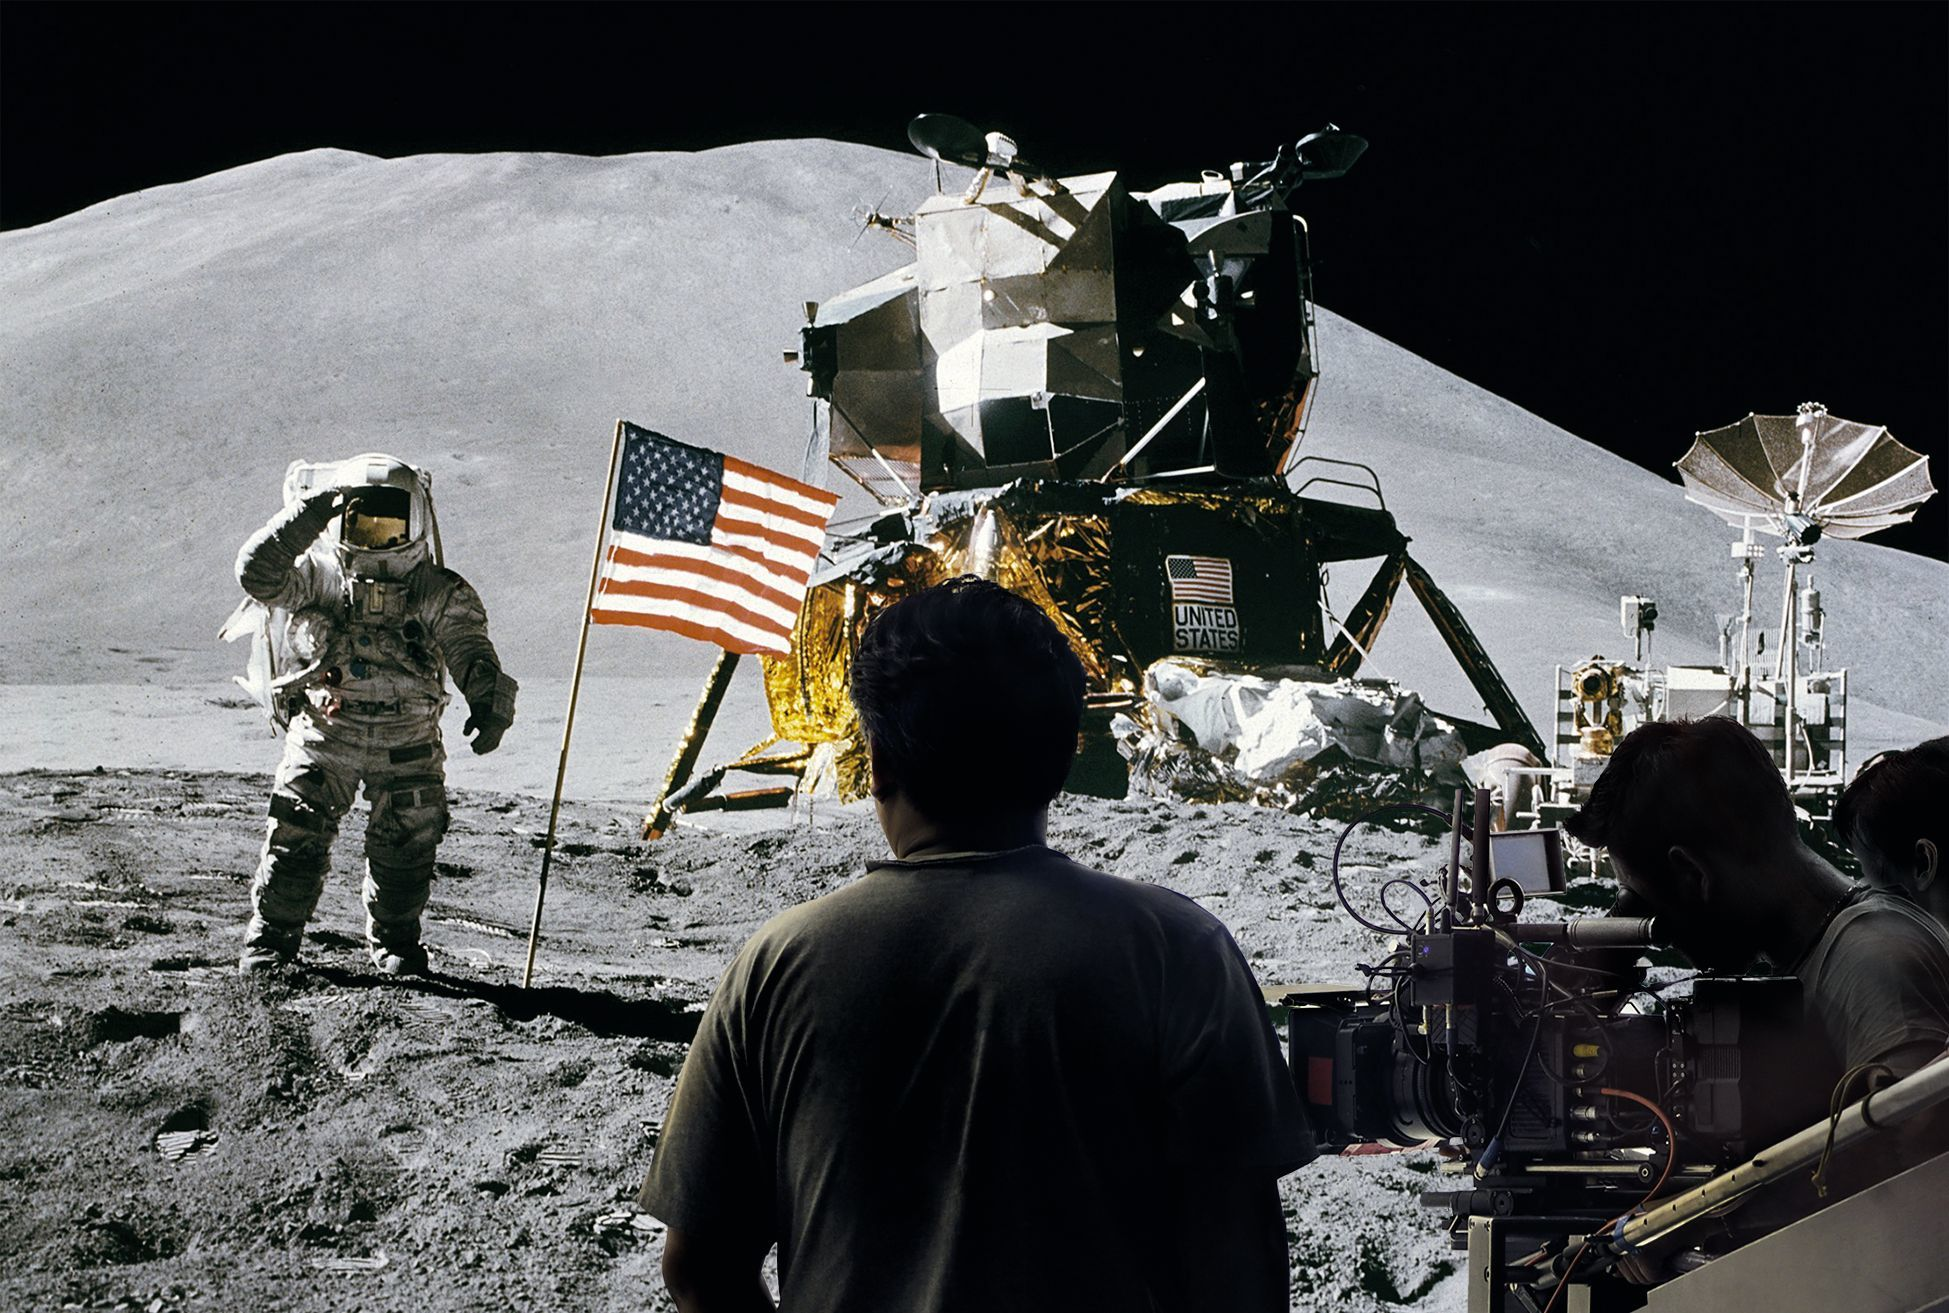 Astronaut James B. Irwin during Apollo 15 mission, 1971. Photomontage by A. Dos Santos, 2019.